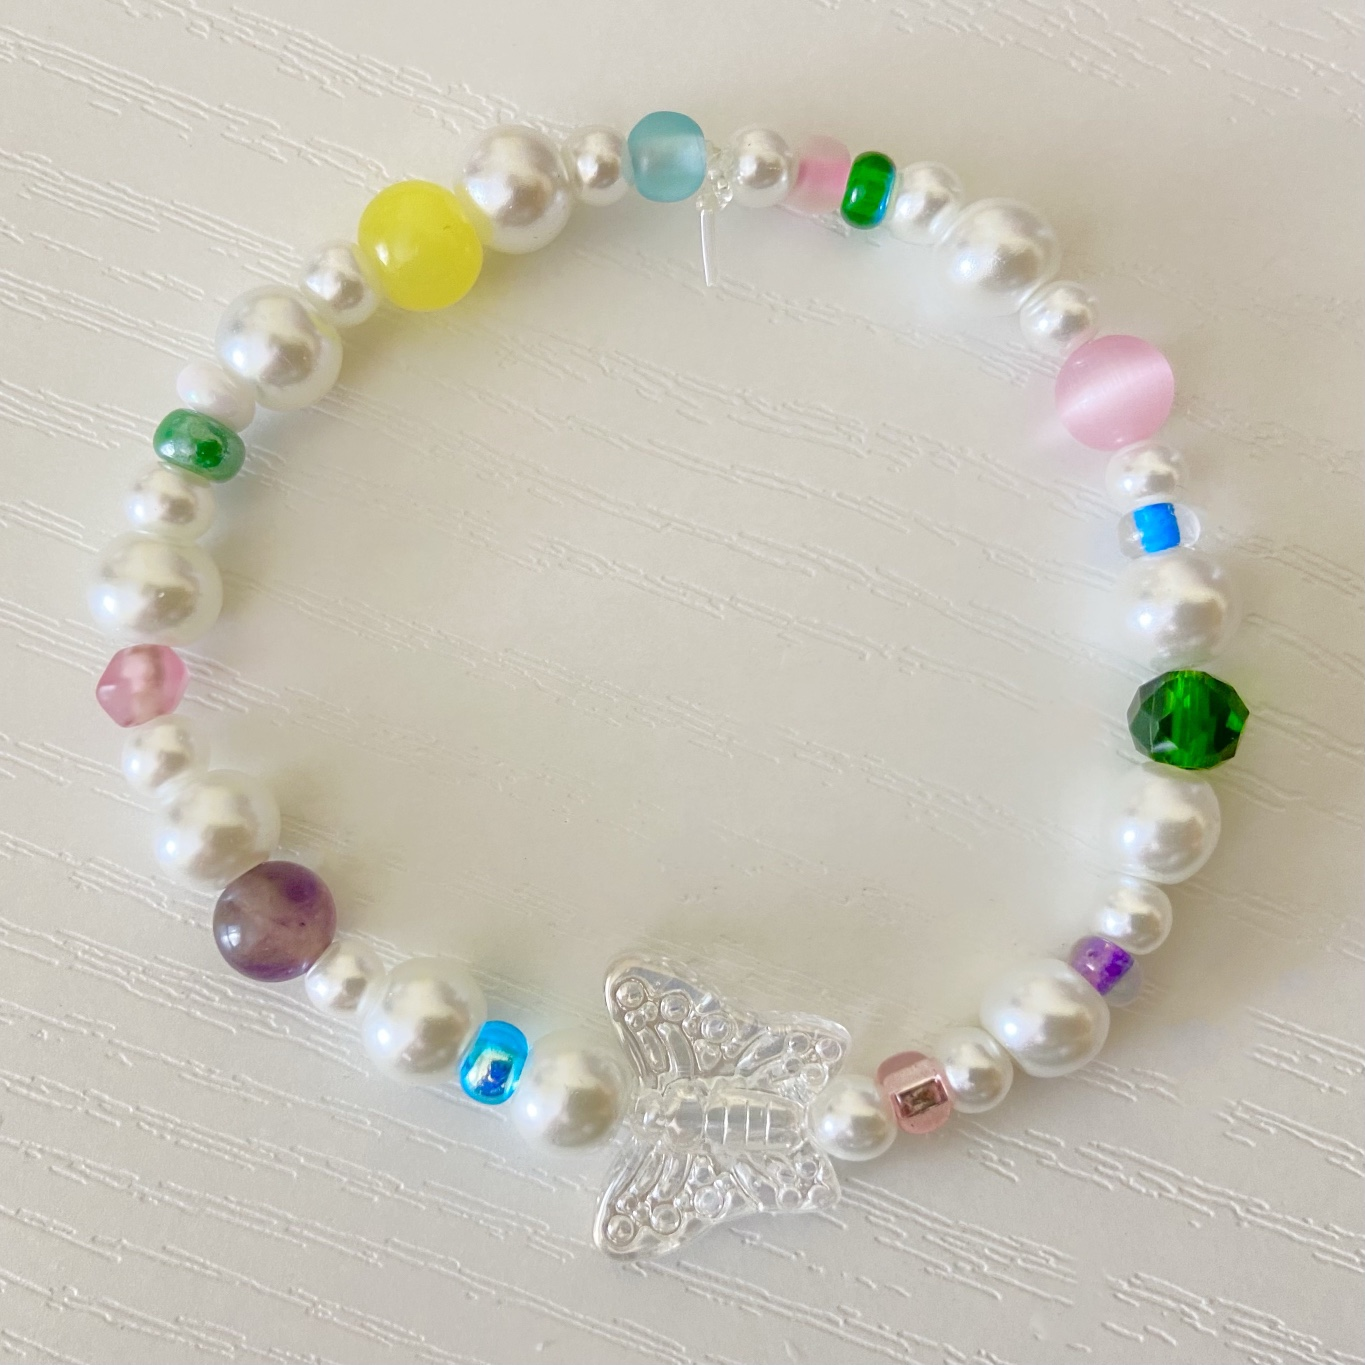 Product Image 1 - Colorful beaded pearl bracelet with